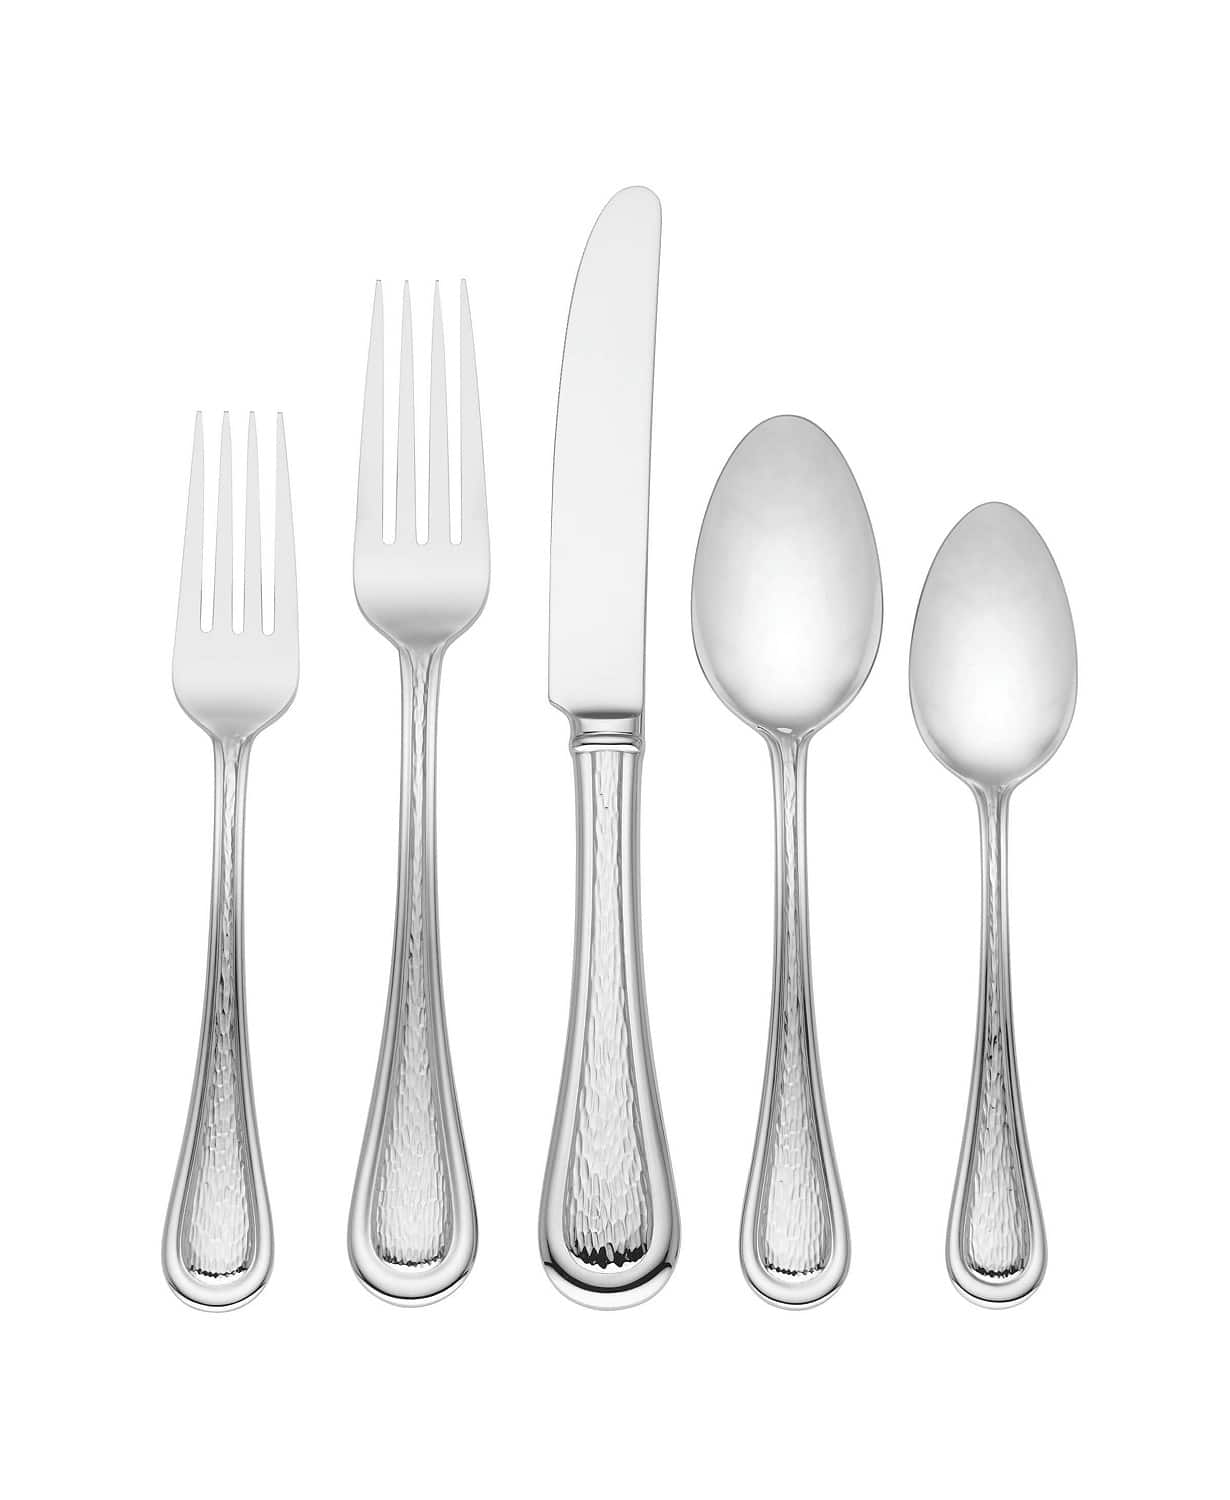 Discount Stainless Flatware 104 Pc Lenox 18 10 Stainless Steel Flatware Set Service For 12